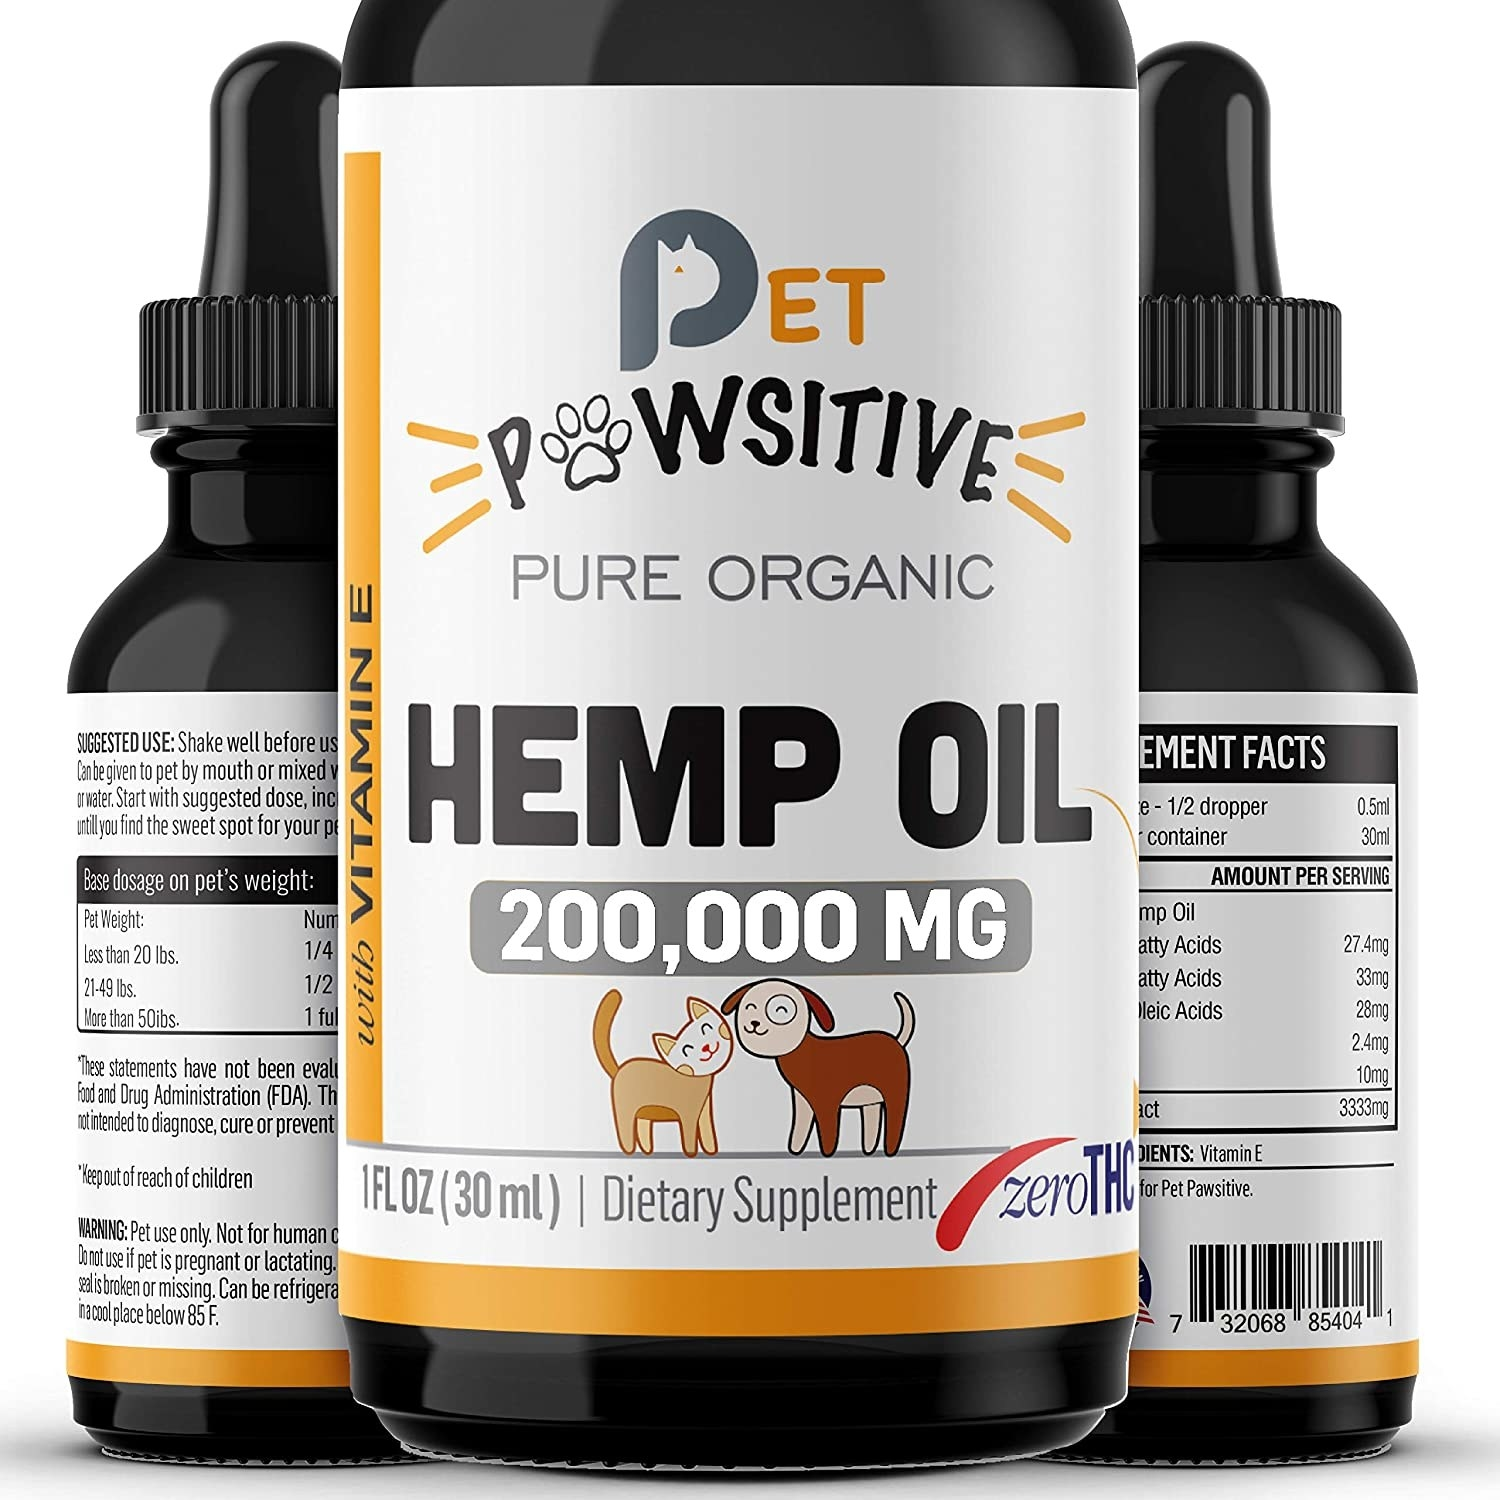 the bottle of hemp oil